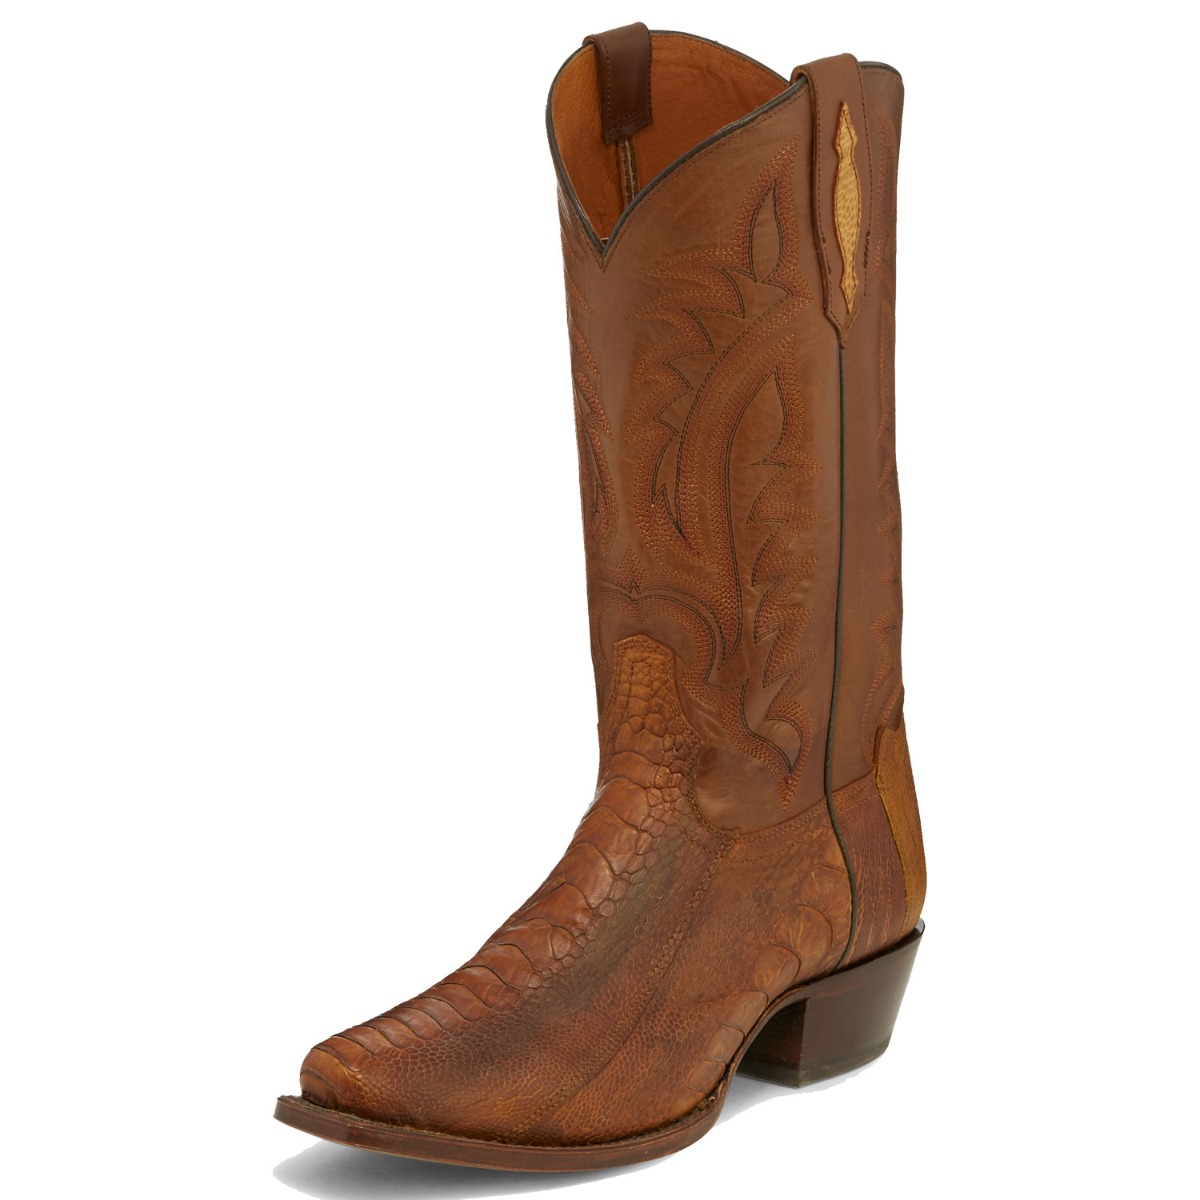 TONY LAMA MEN'S SUNSET OILED OSTRICH LEG NARROW SQUARE TOE BOOTS